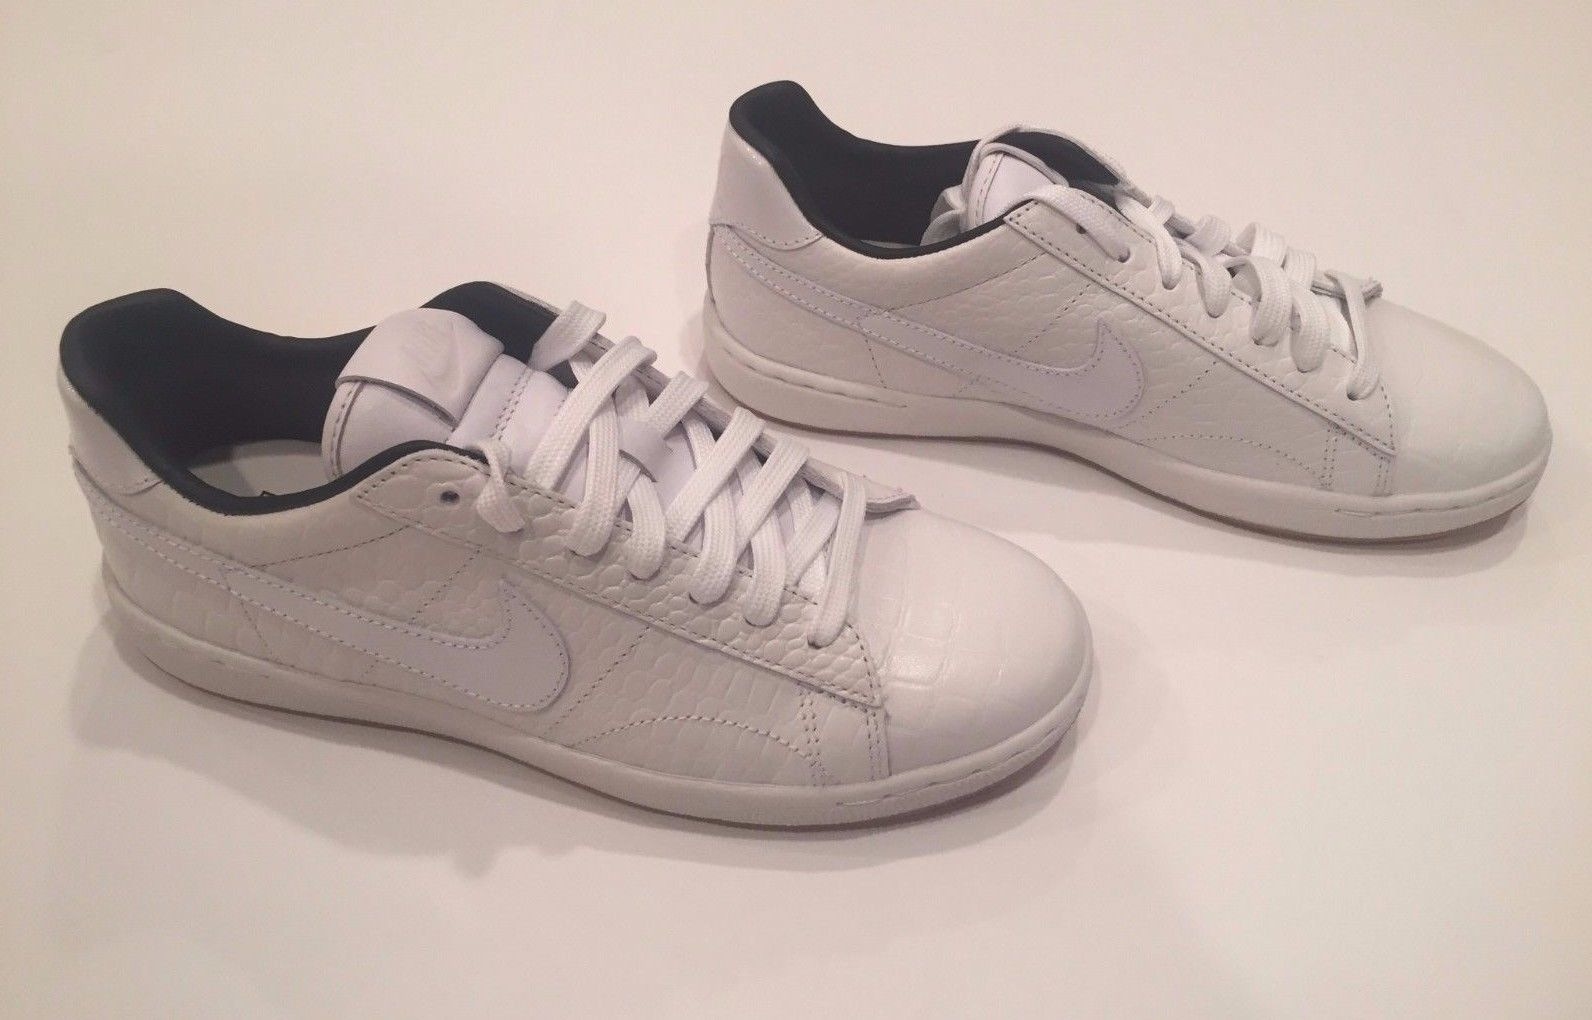 best service bf644 e9998 NEW WOMEN S NIKE TENNIS CLASSIC ULTRA PRM QS SHOES SIZE 7 724977 100  150.00